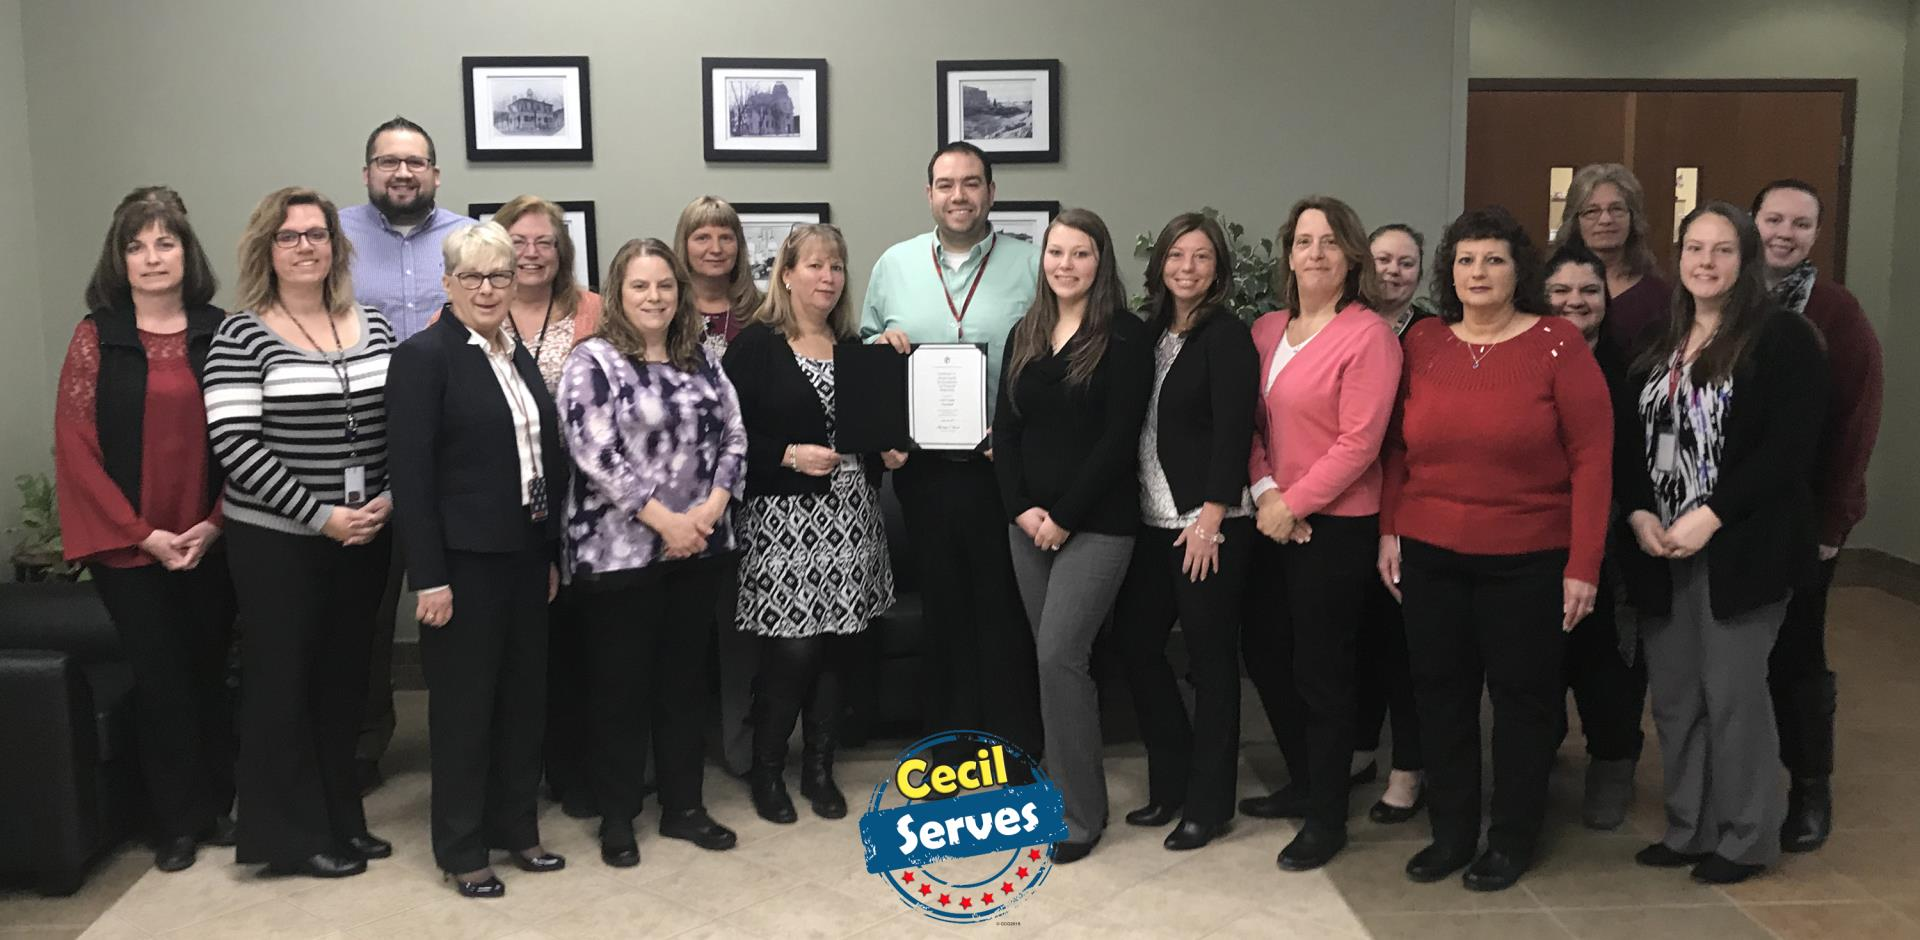 Cecil County Earns 31st Consecutive Annual Award for Excellence in Financial Reporting